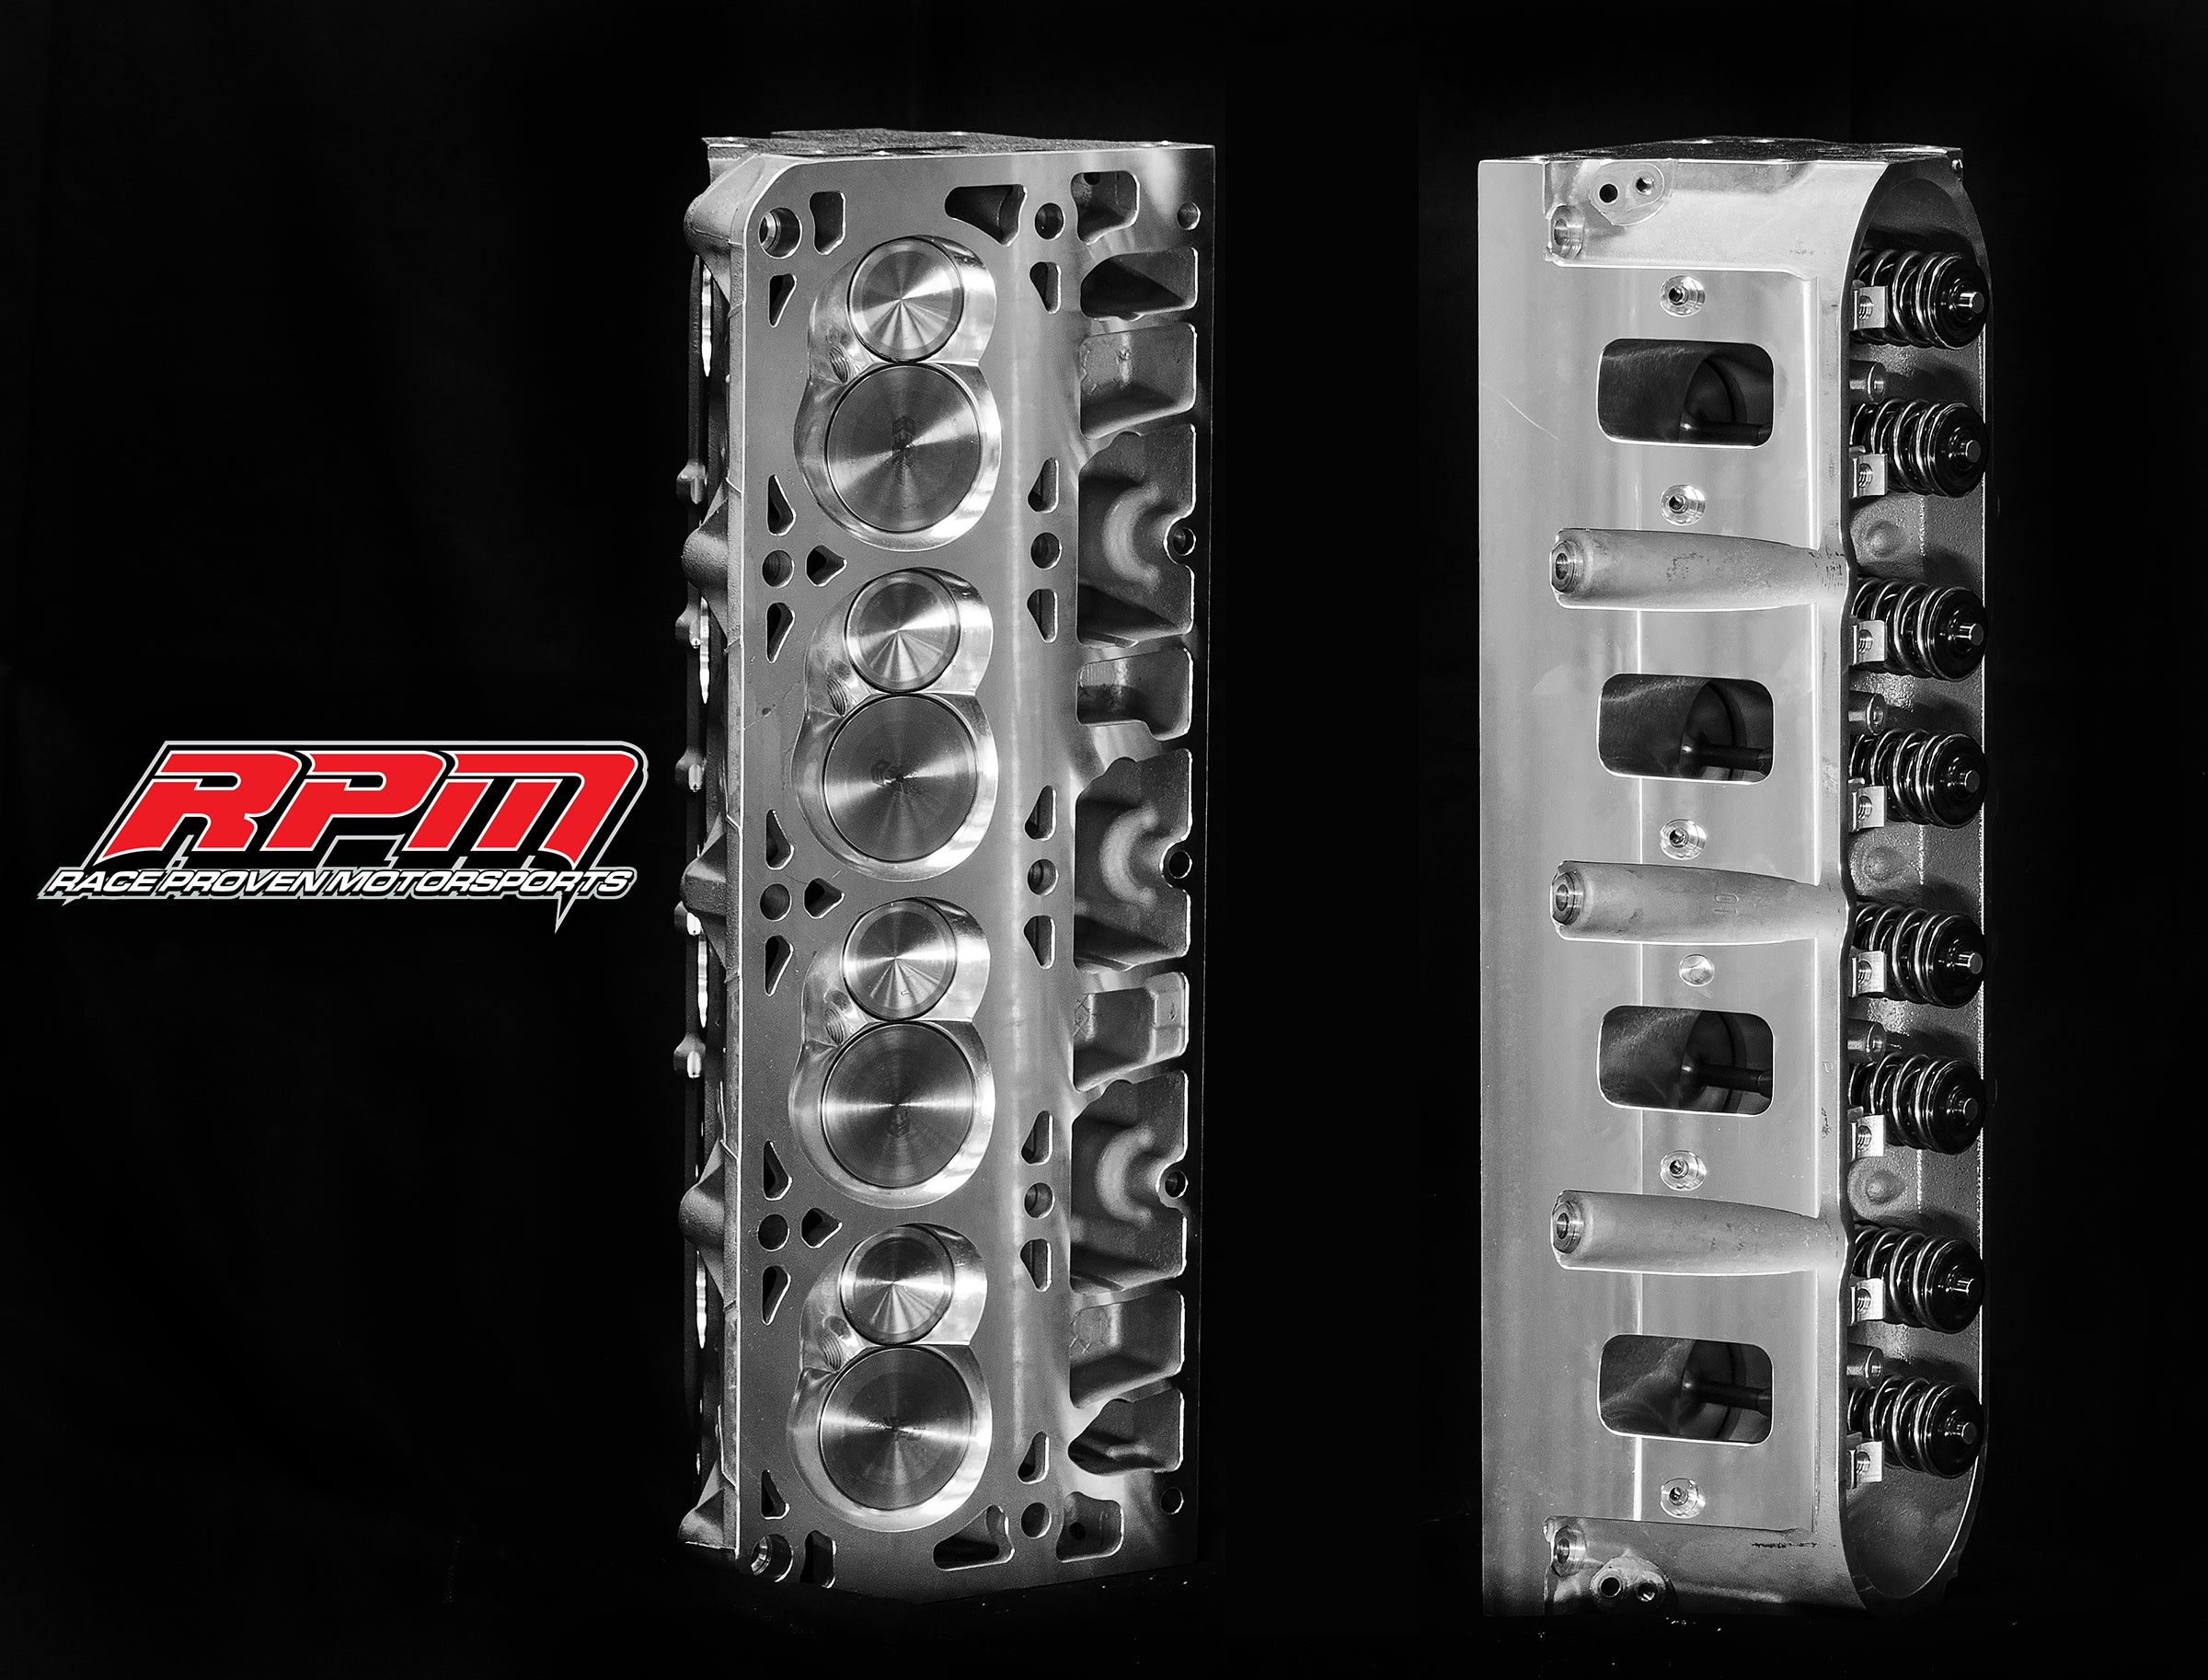 C6 Z06 LS7 Ported and Polished Cylinder Heads | Race Proven